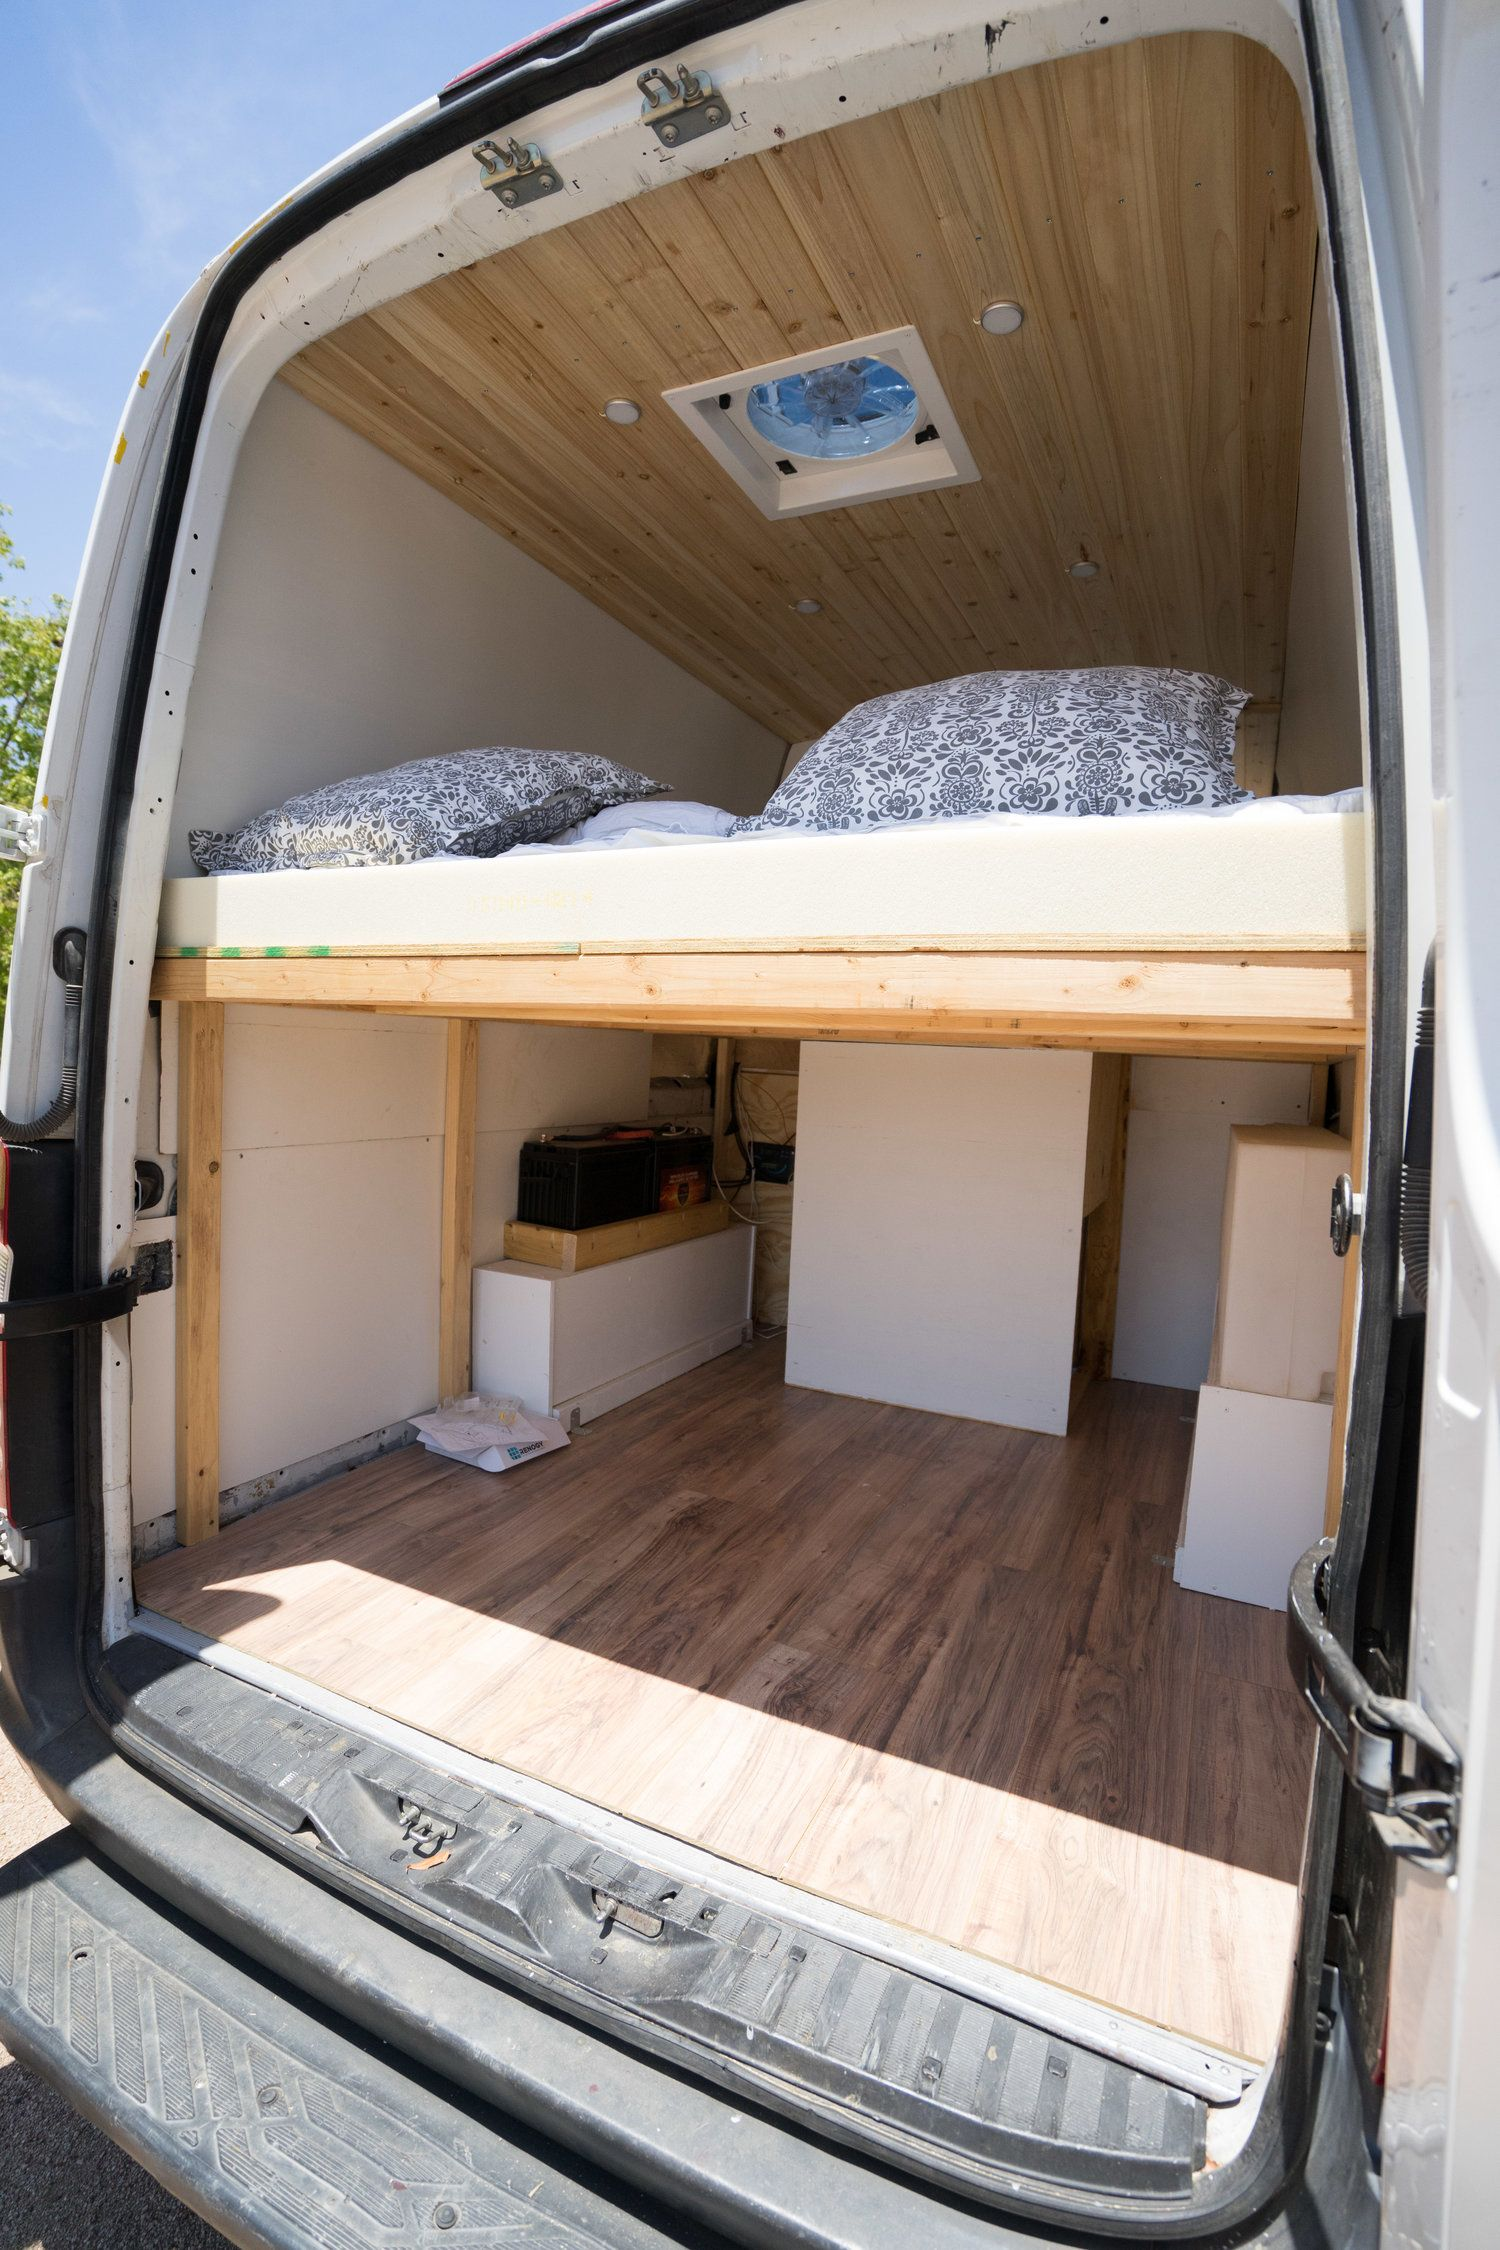 2008 dodge sprinter 170 van life campingbus. Black Bedroom Furniture Sets. Home Design Ideas